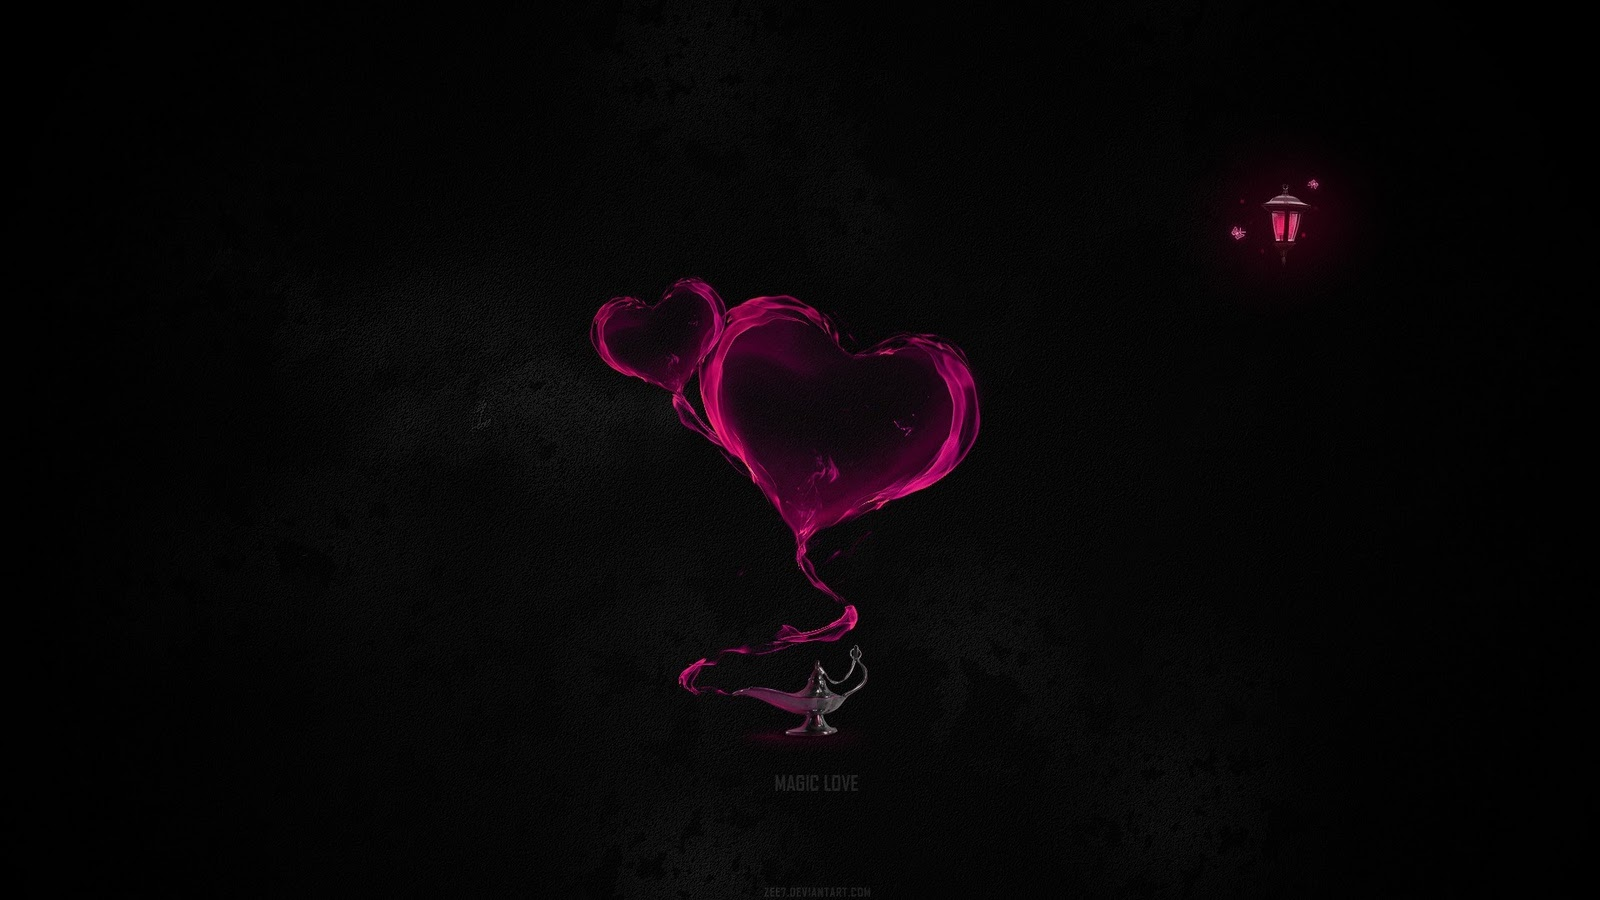 Love Wallpaper Black Background : TOP HD WALLPAPERS: LOVE HD WALLPAPER